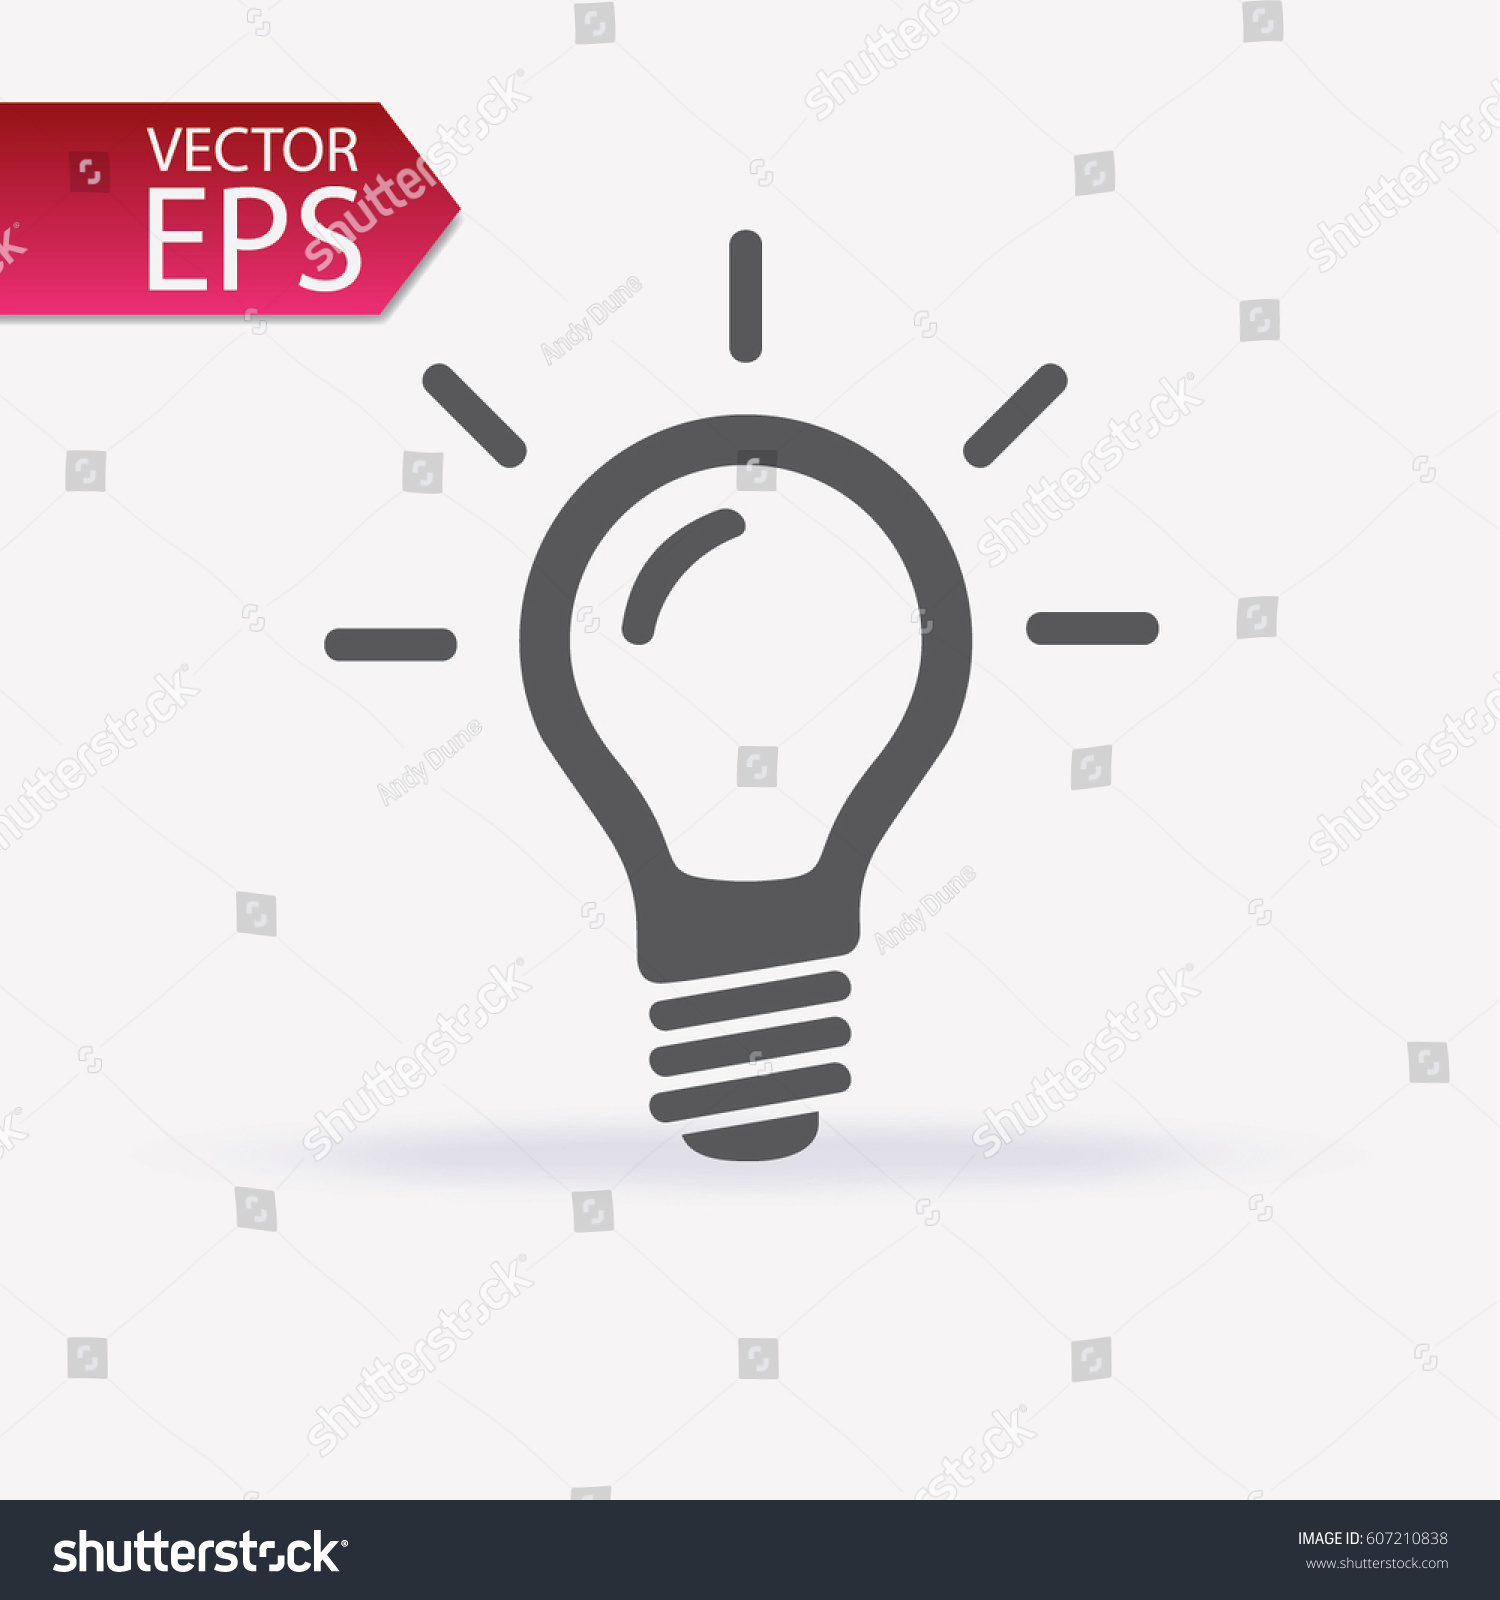 Bulb icon isolated on light background. Symbol of lighting, electric. Idea sign, thinking concept in flat style for graphic design, Web site, UI. EPS #607210838